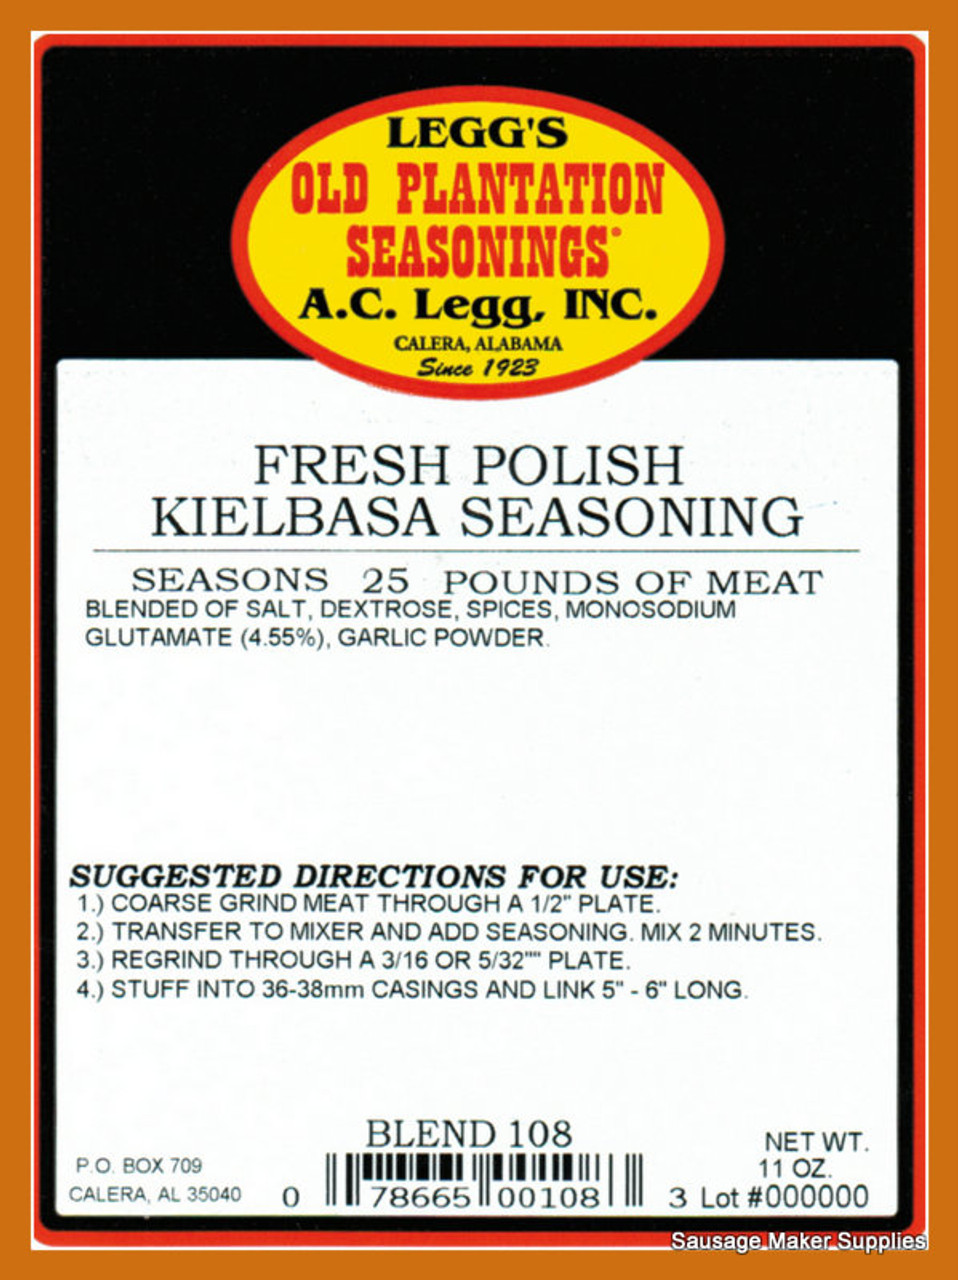 FRESH POLISH KIELBASA Blend 108  Contains the same spice blend as our Smoked Polish Kielbasa seasoning.